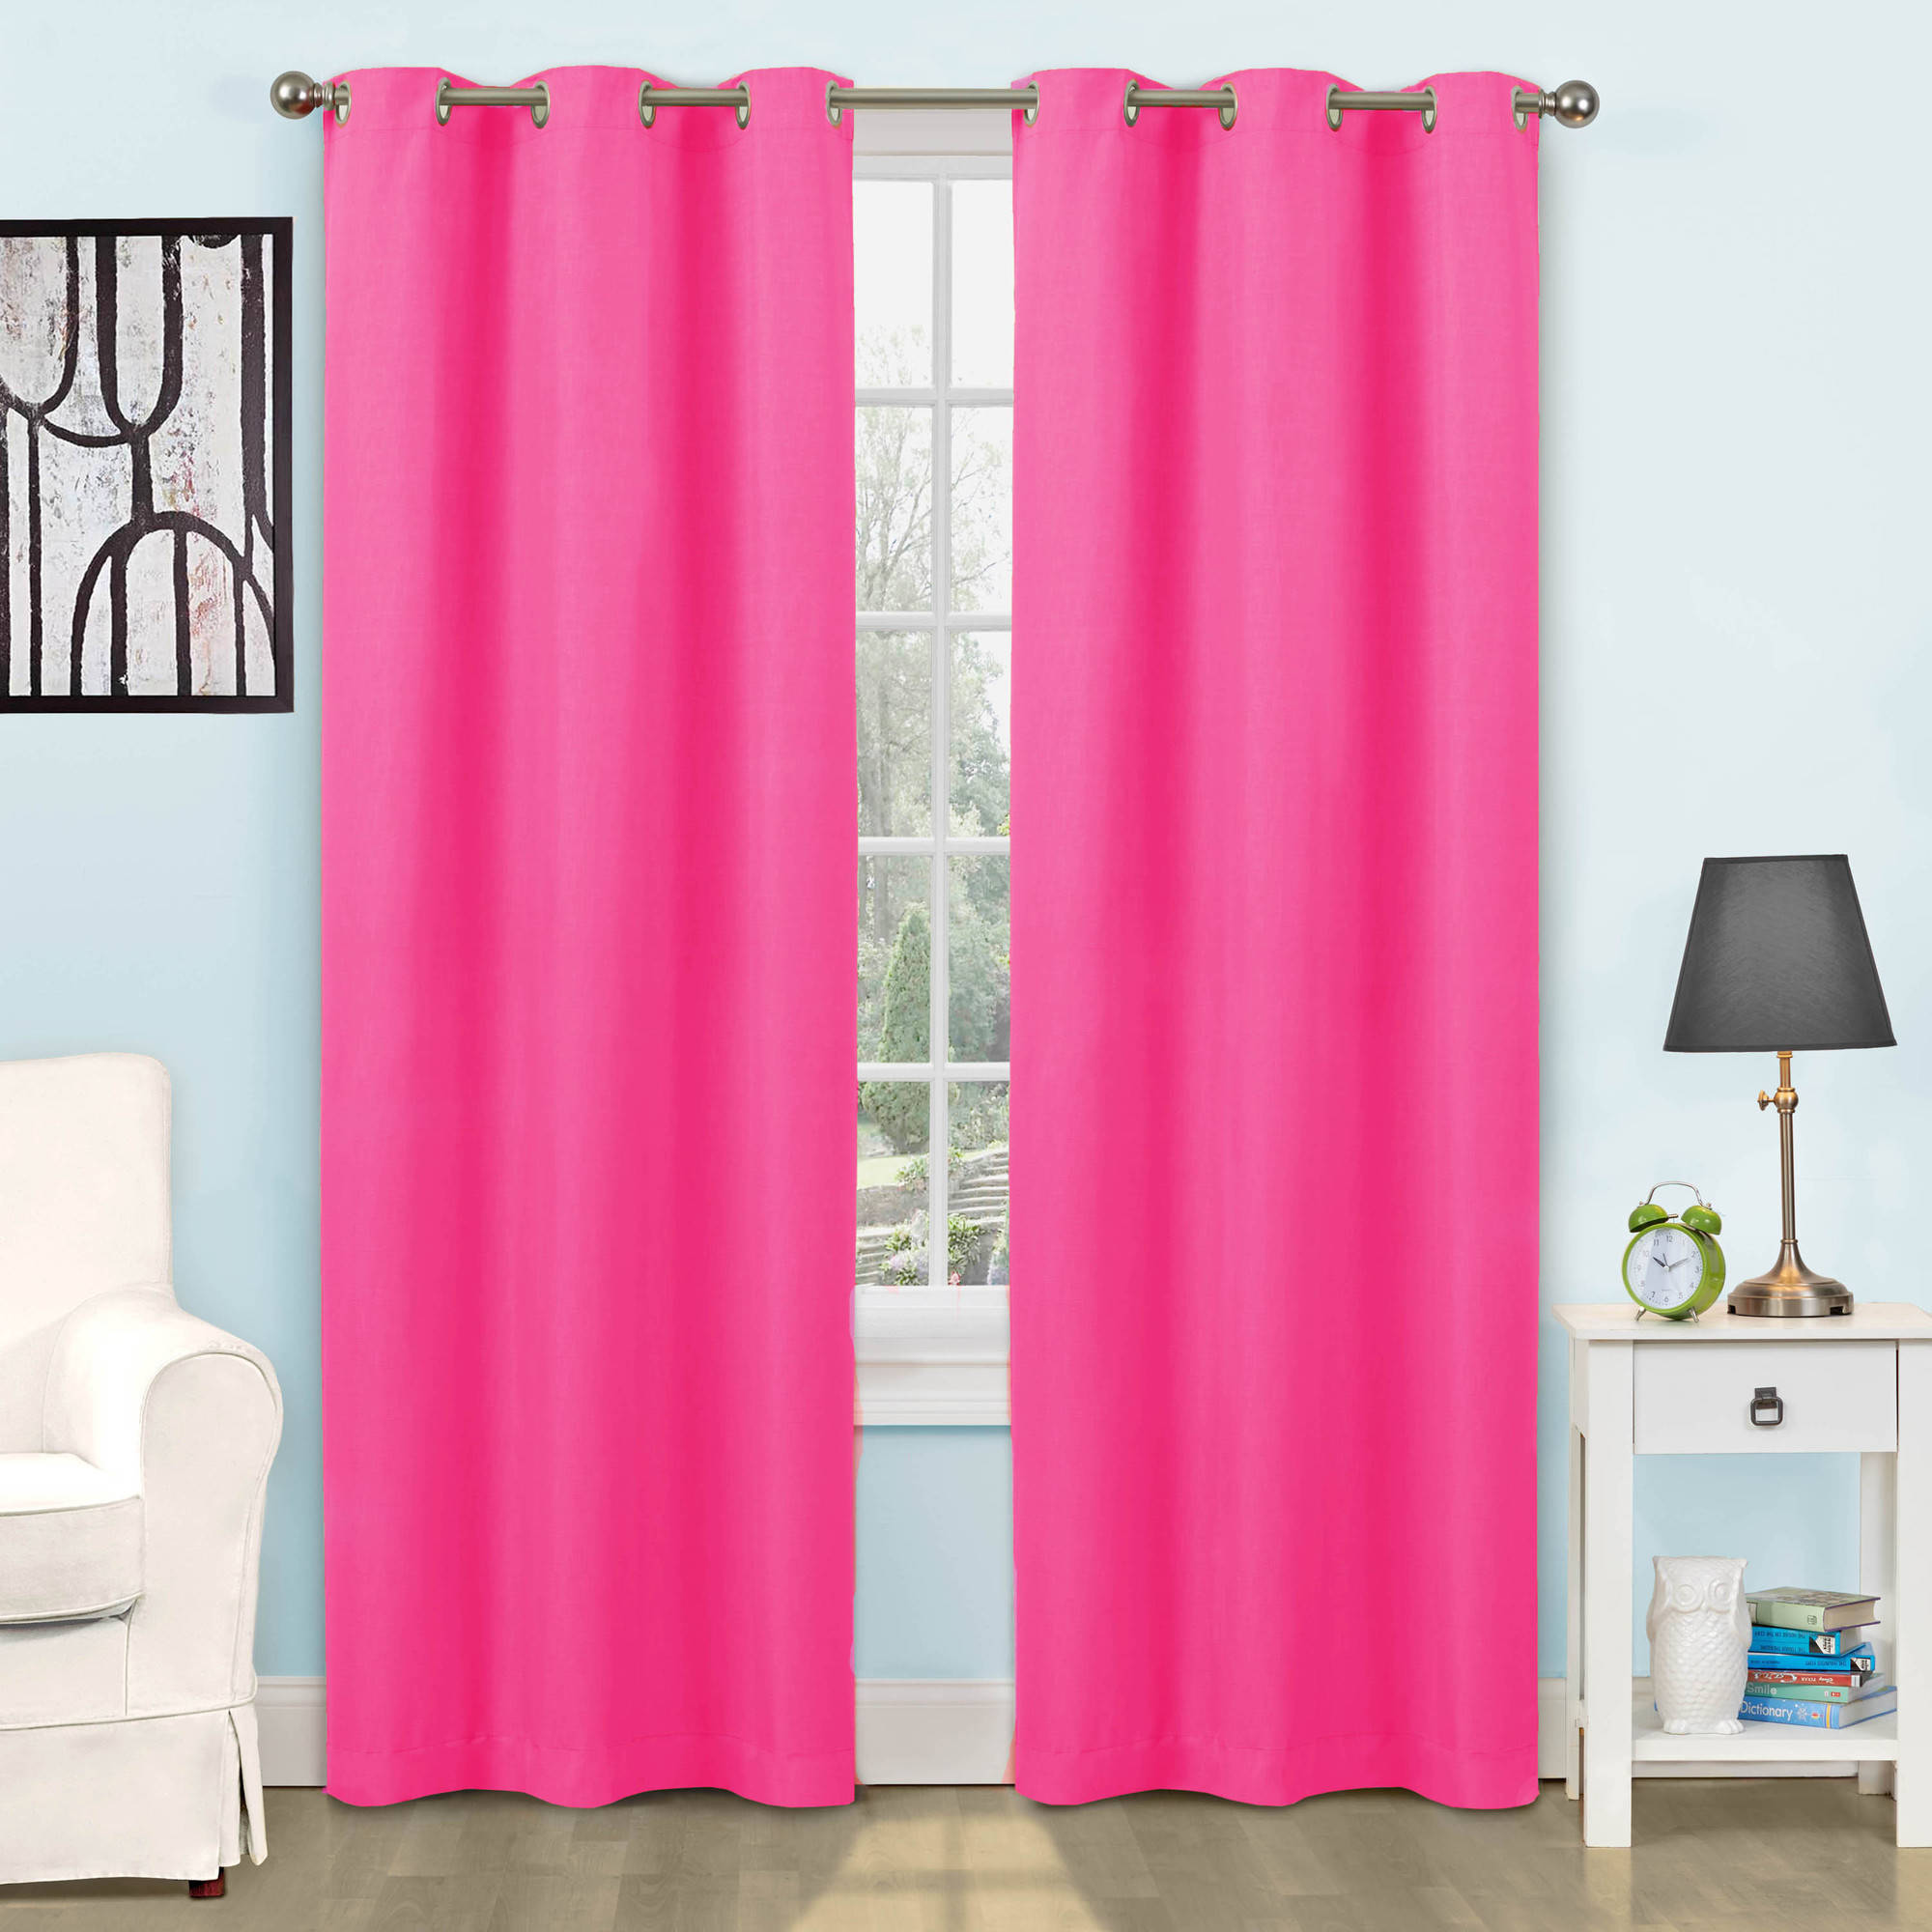 Choose kids bedroom curtains in a jiffy for Bedrooms curtains photos